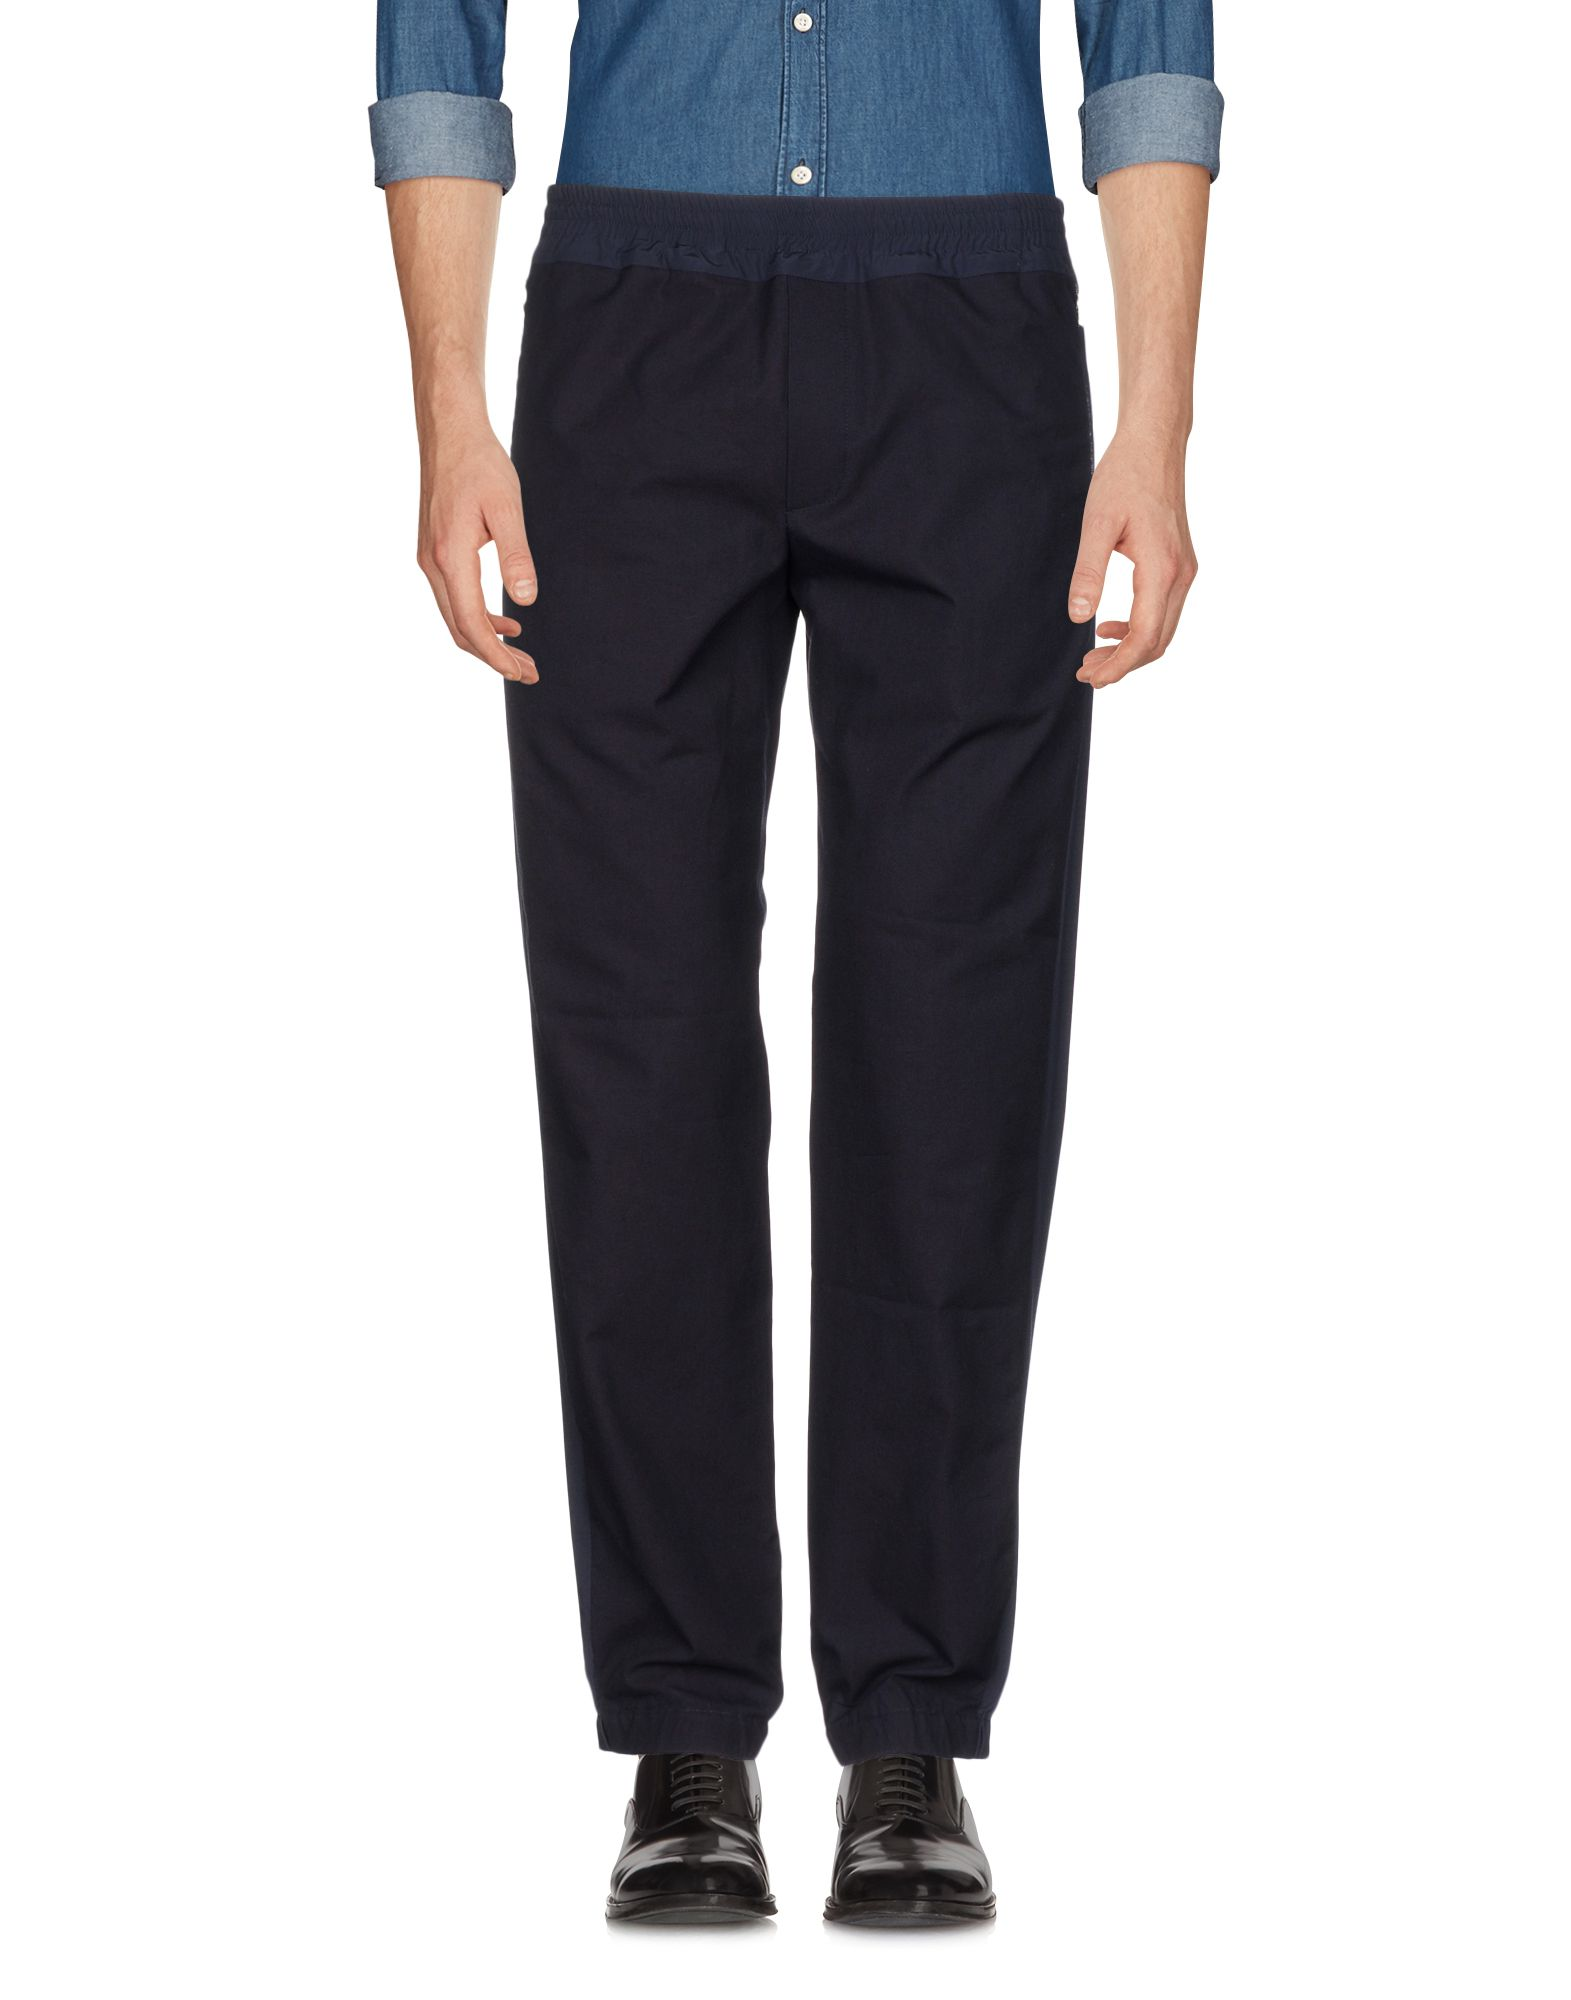 TIM COPPENS Casual Pants in Dark Purple